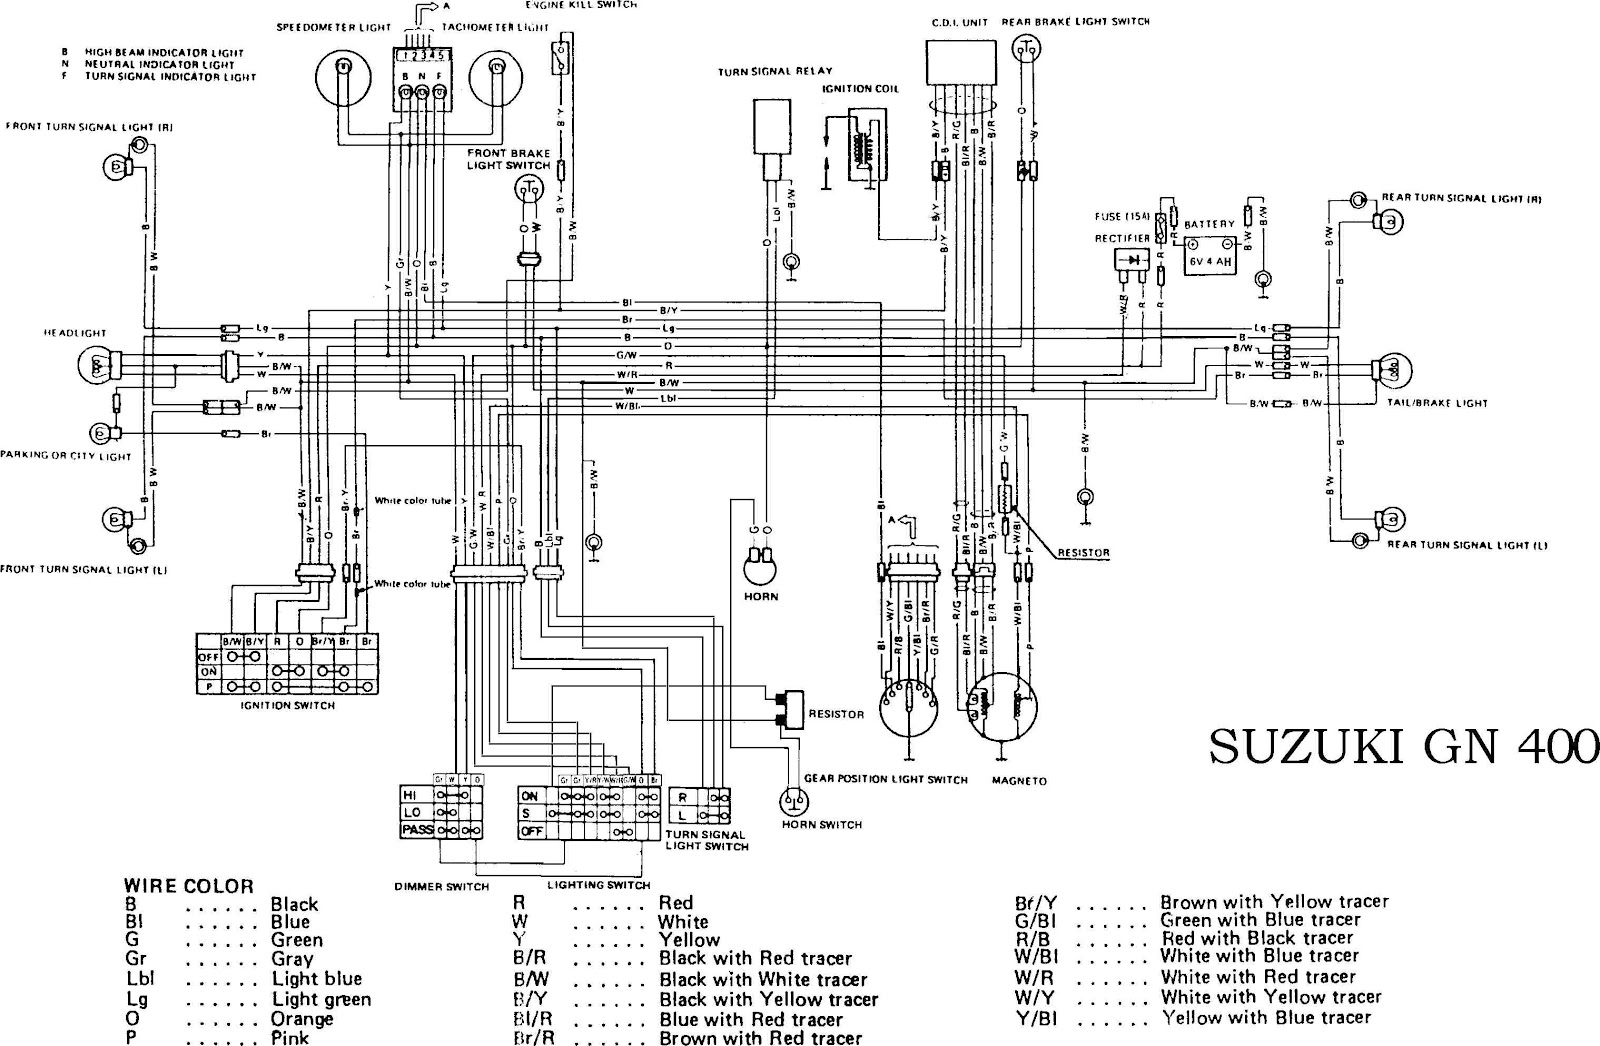 Suzuki GN400 motorcycle Complete Electrical Wiring Diagram